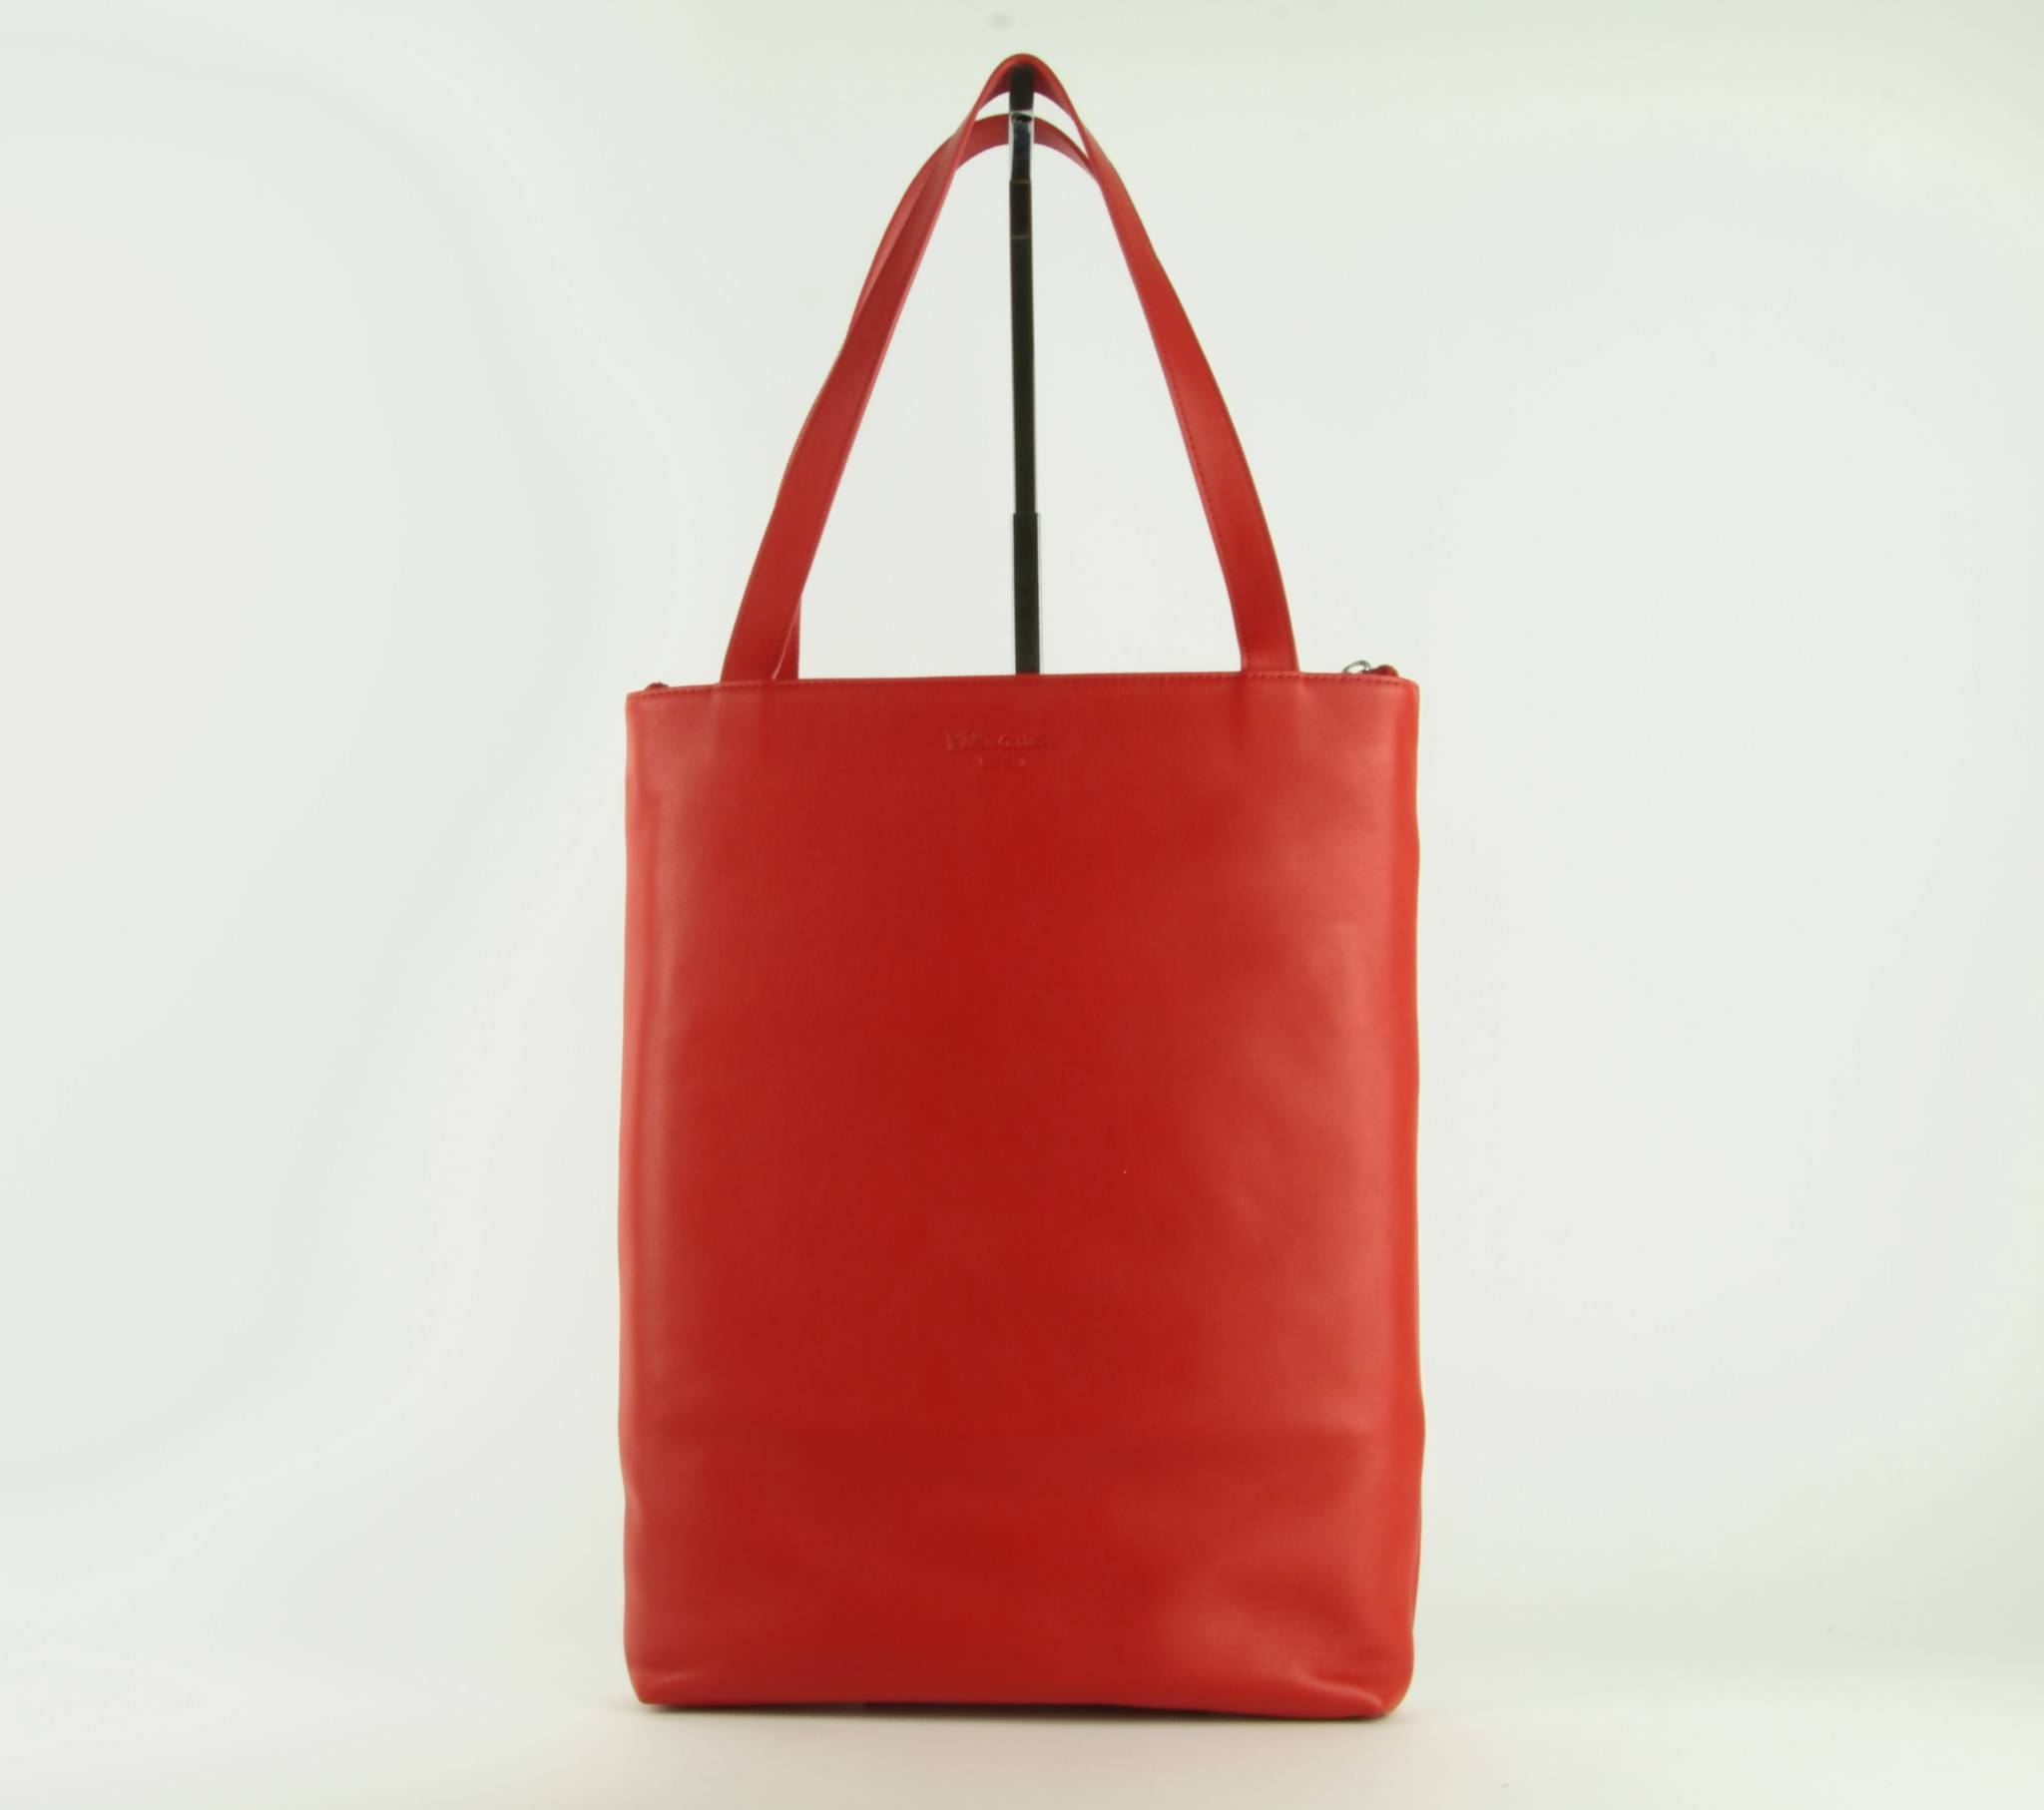 Tote bag Makona red / Laptopbag